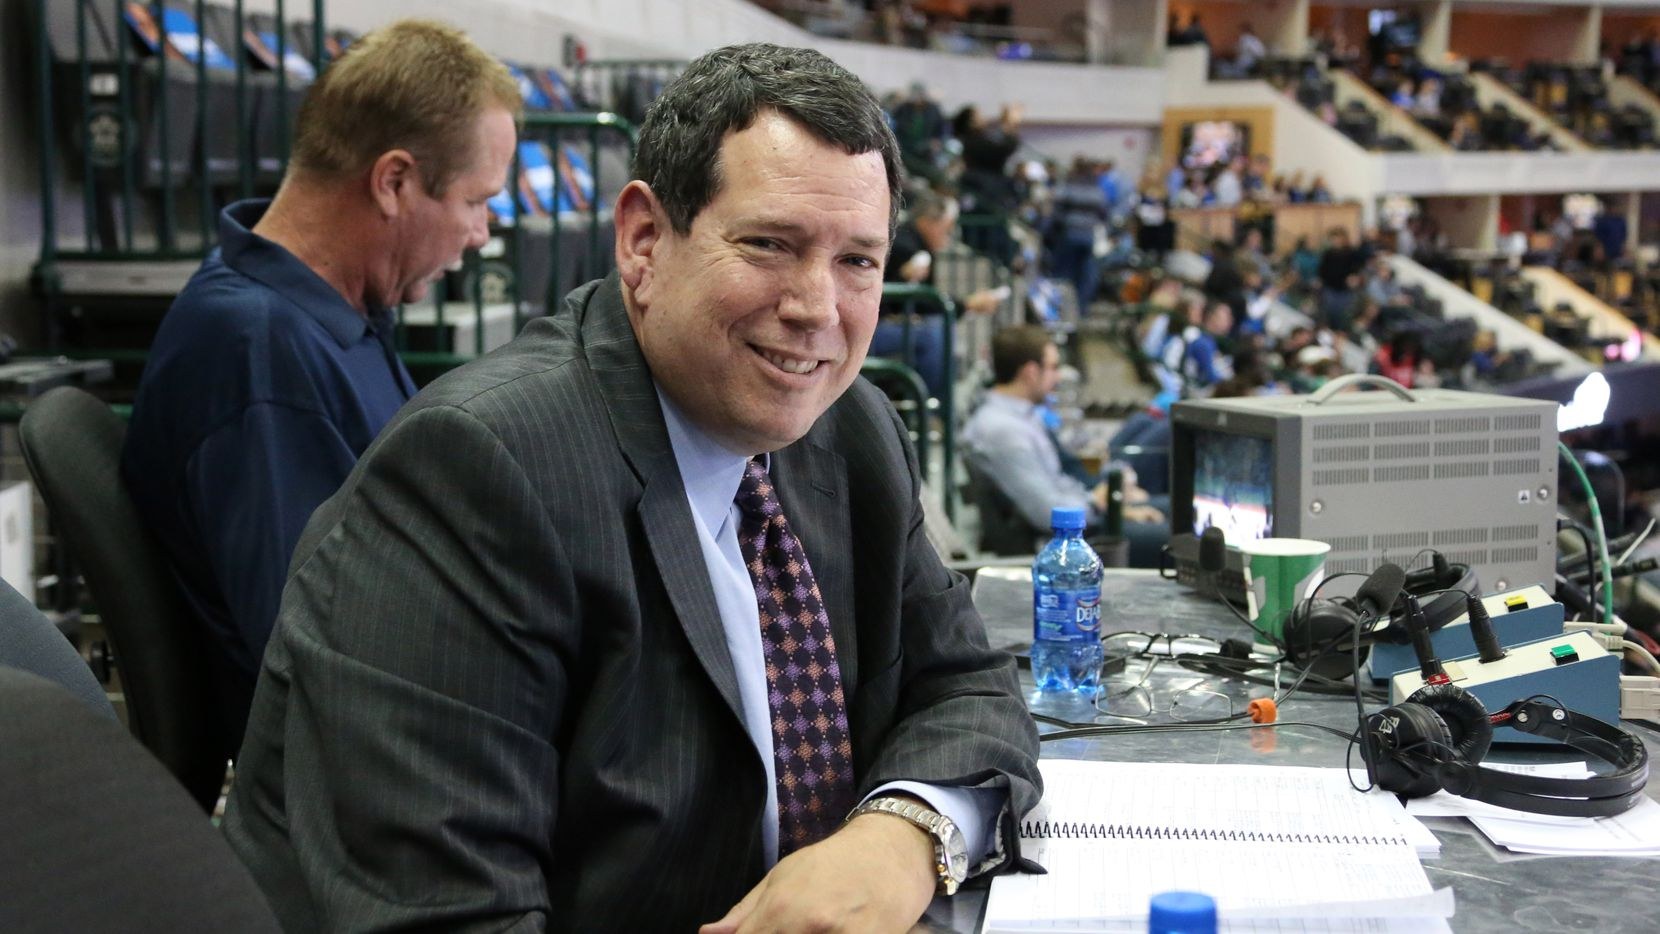 Dallas Mavericks announcer Chuck Cooperstein is pictured during the Houston Rockets vs. the Dallas Mavericks NBA basketball game at the American Airlines Center in Dallas on Wednesday, November 20, 2013.